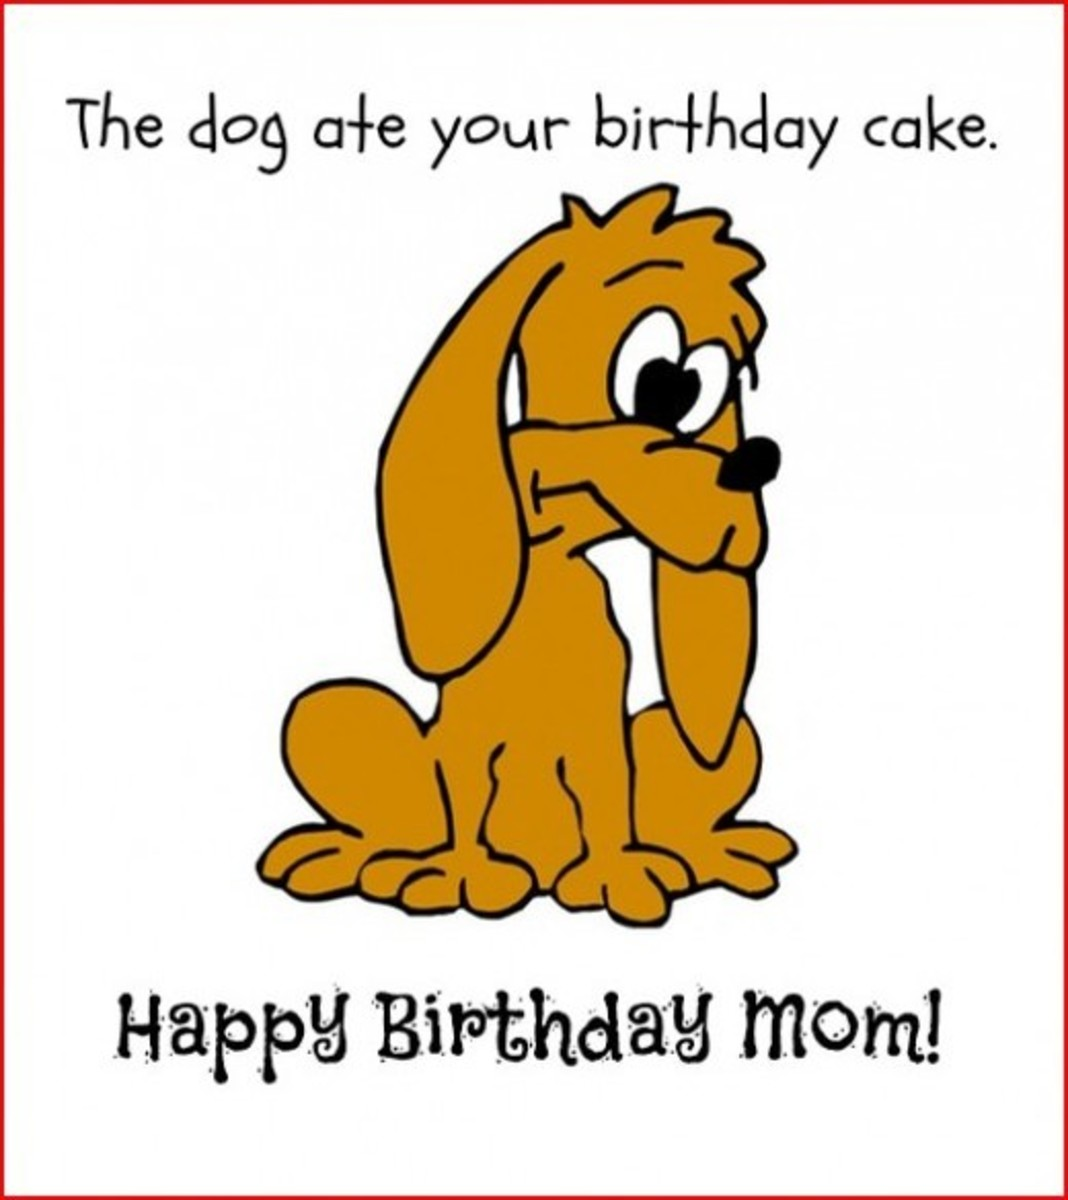 HAPPY BIRTHDAY MOM Birthday Wishes for Mom – Witty Comments for Birthday Cards